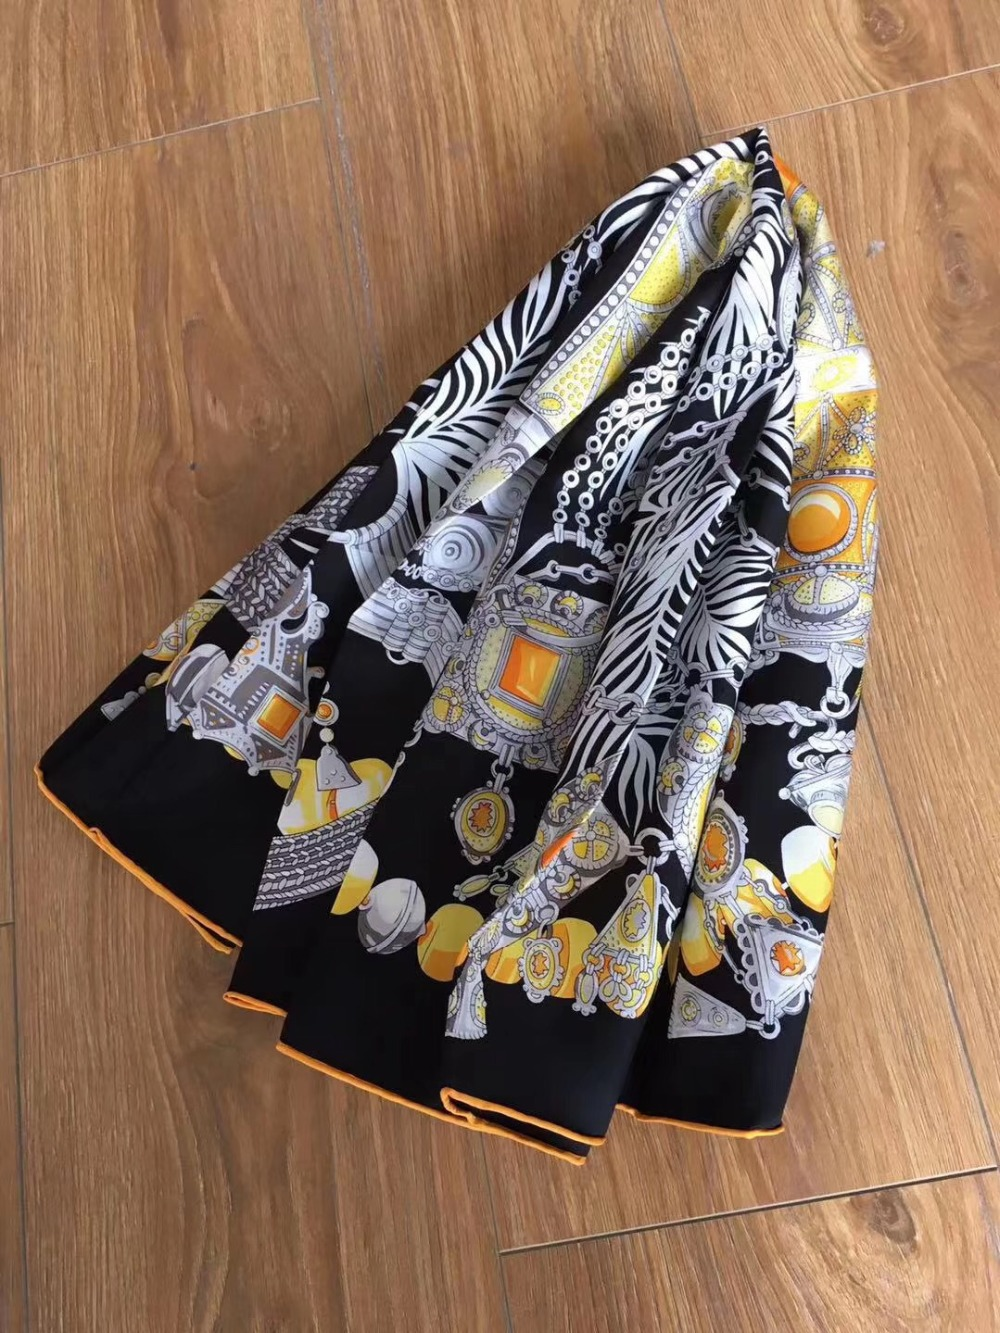 2019 new arrival spring autumn classic print 100% pure silk scarf twill hand made roll 90*90 cm  shawl wrap for women lady